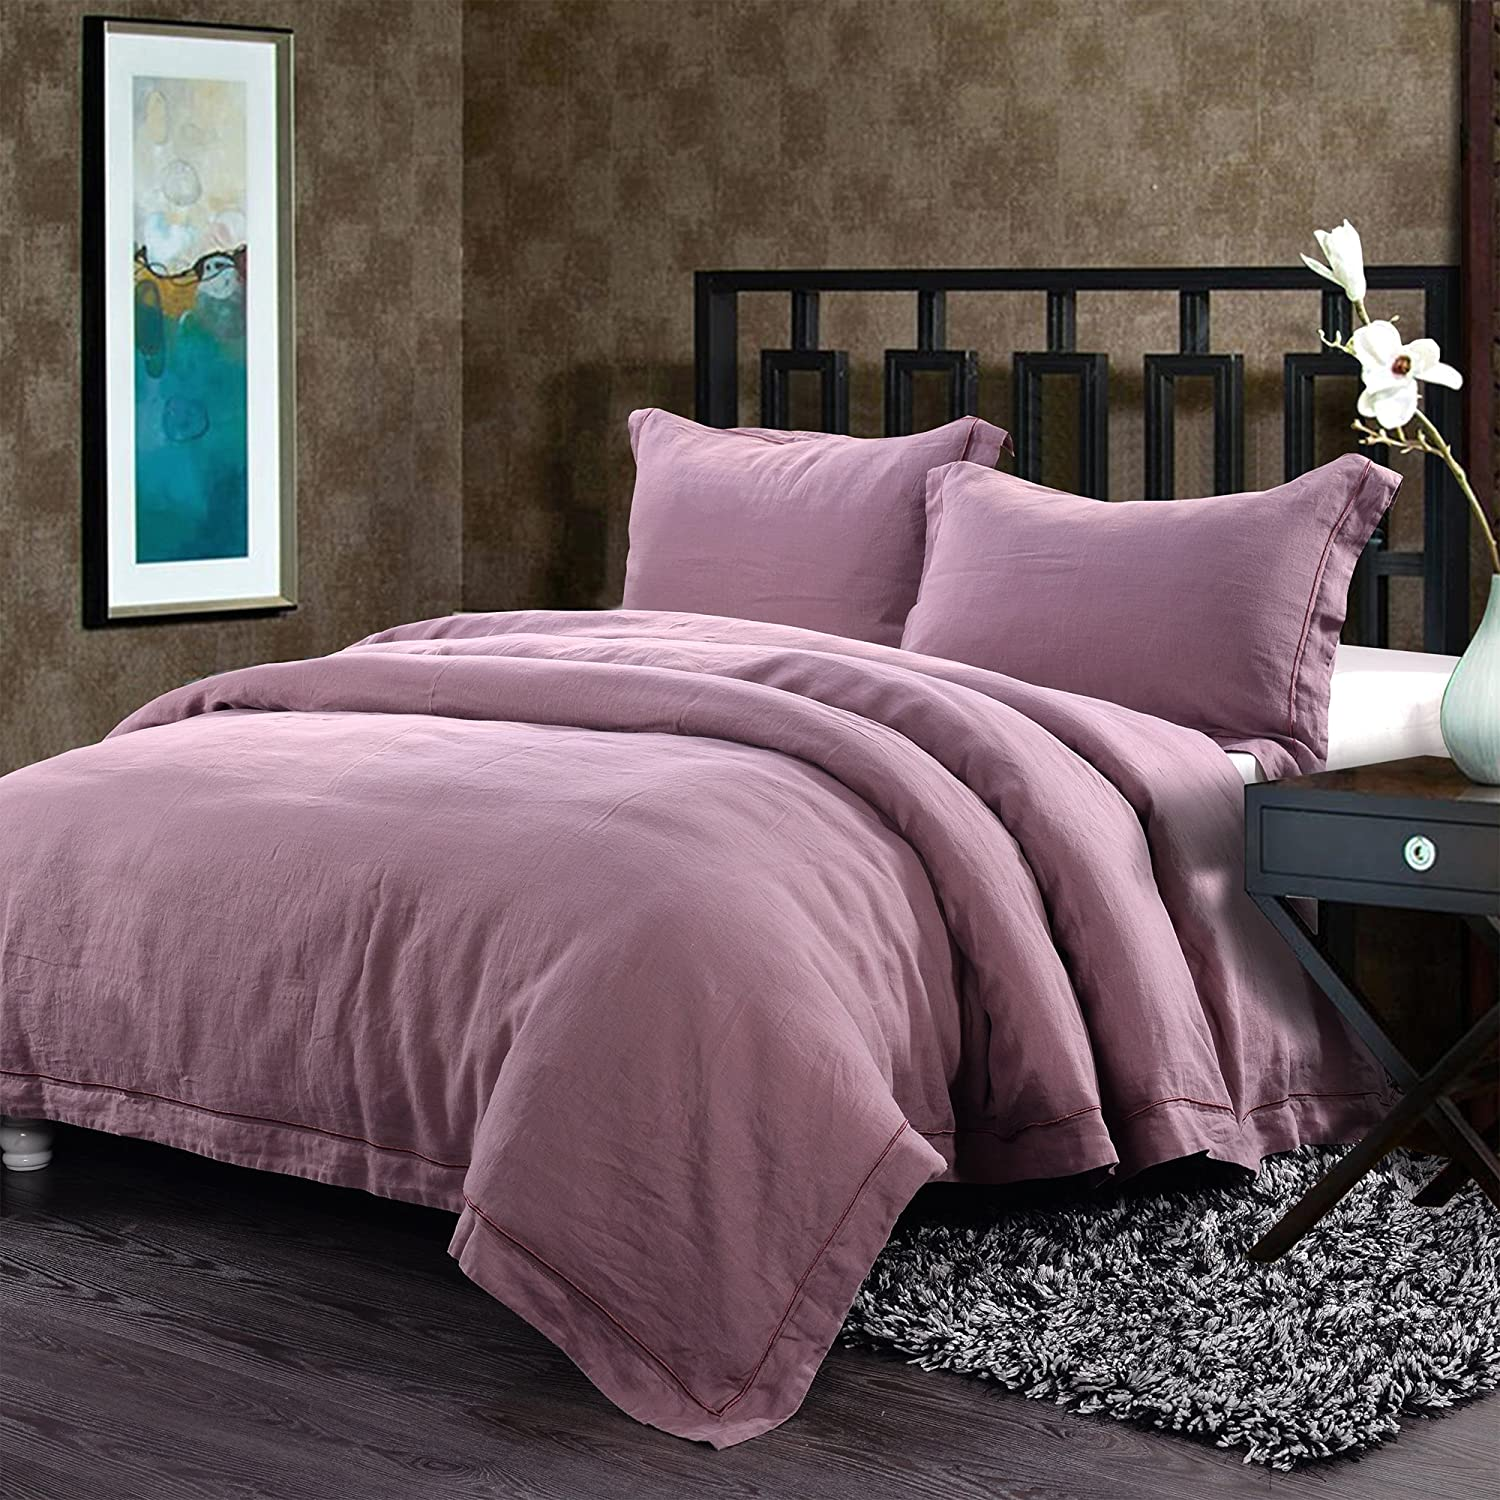 100% Linen Duvet Cover Set Embroidery Solid King, Purple